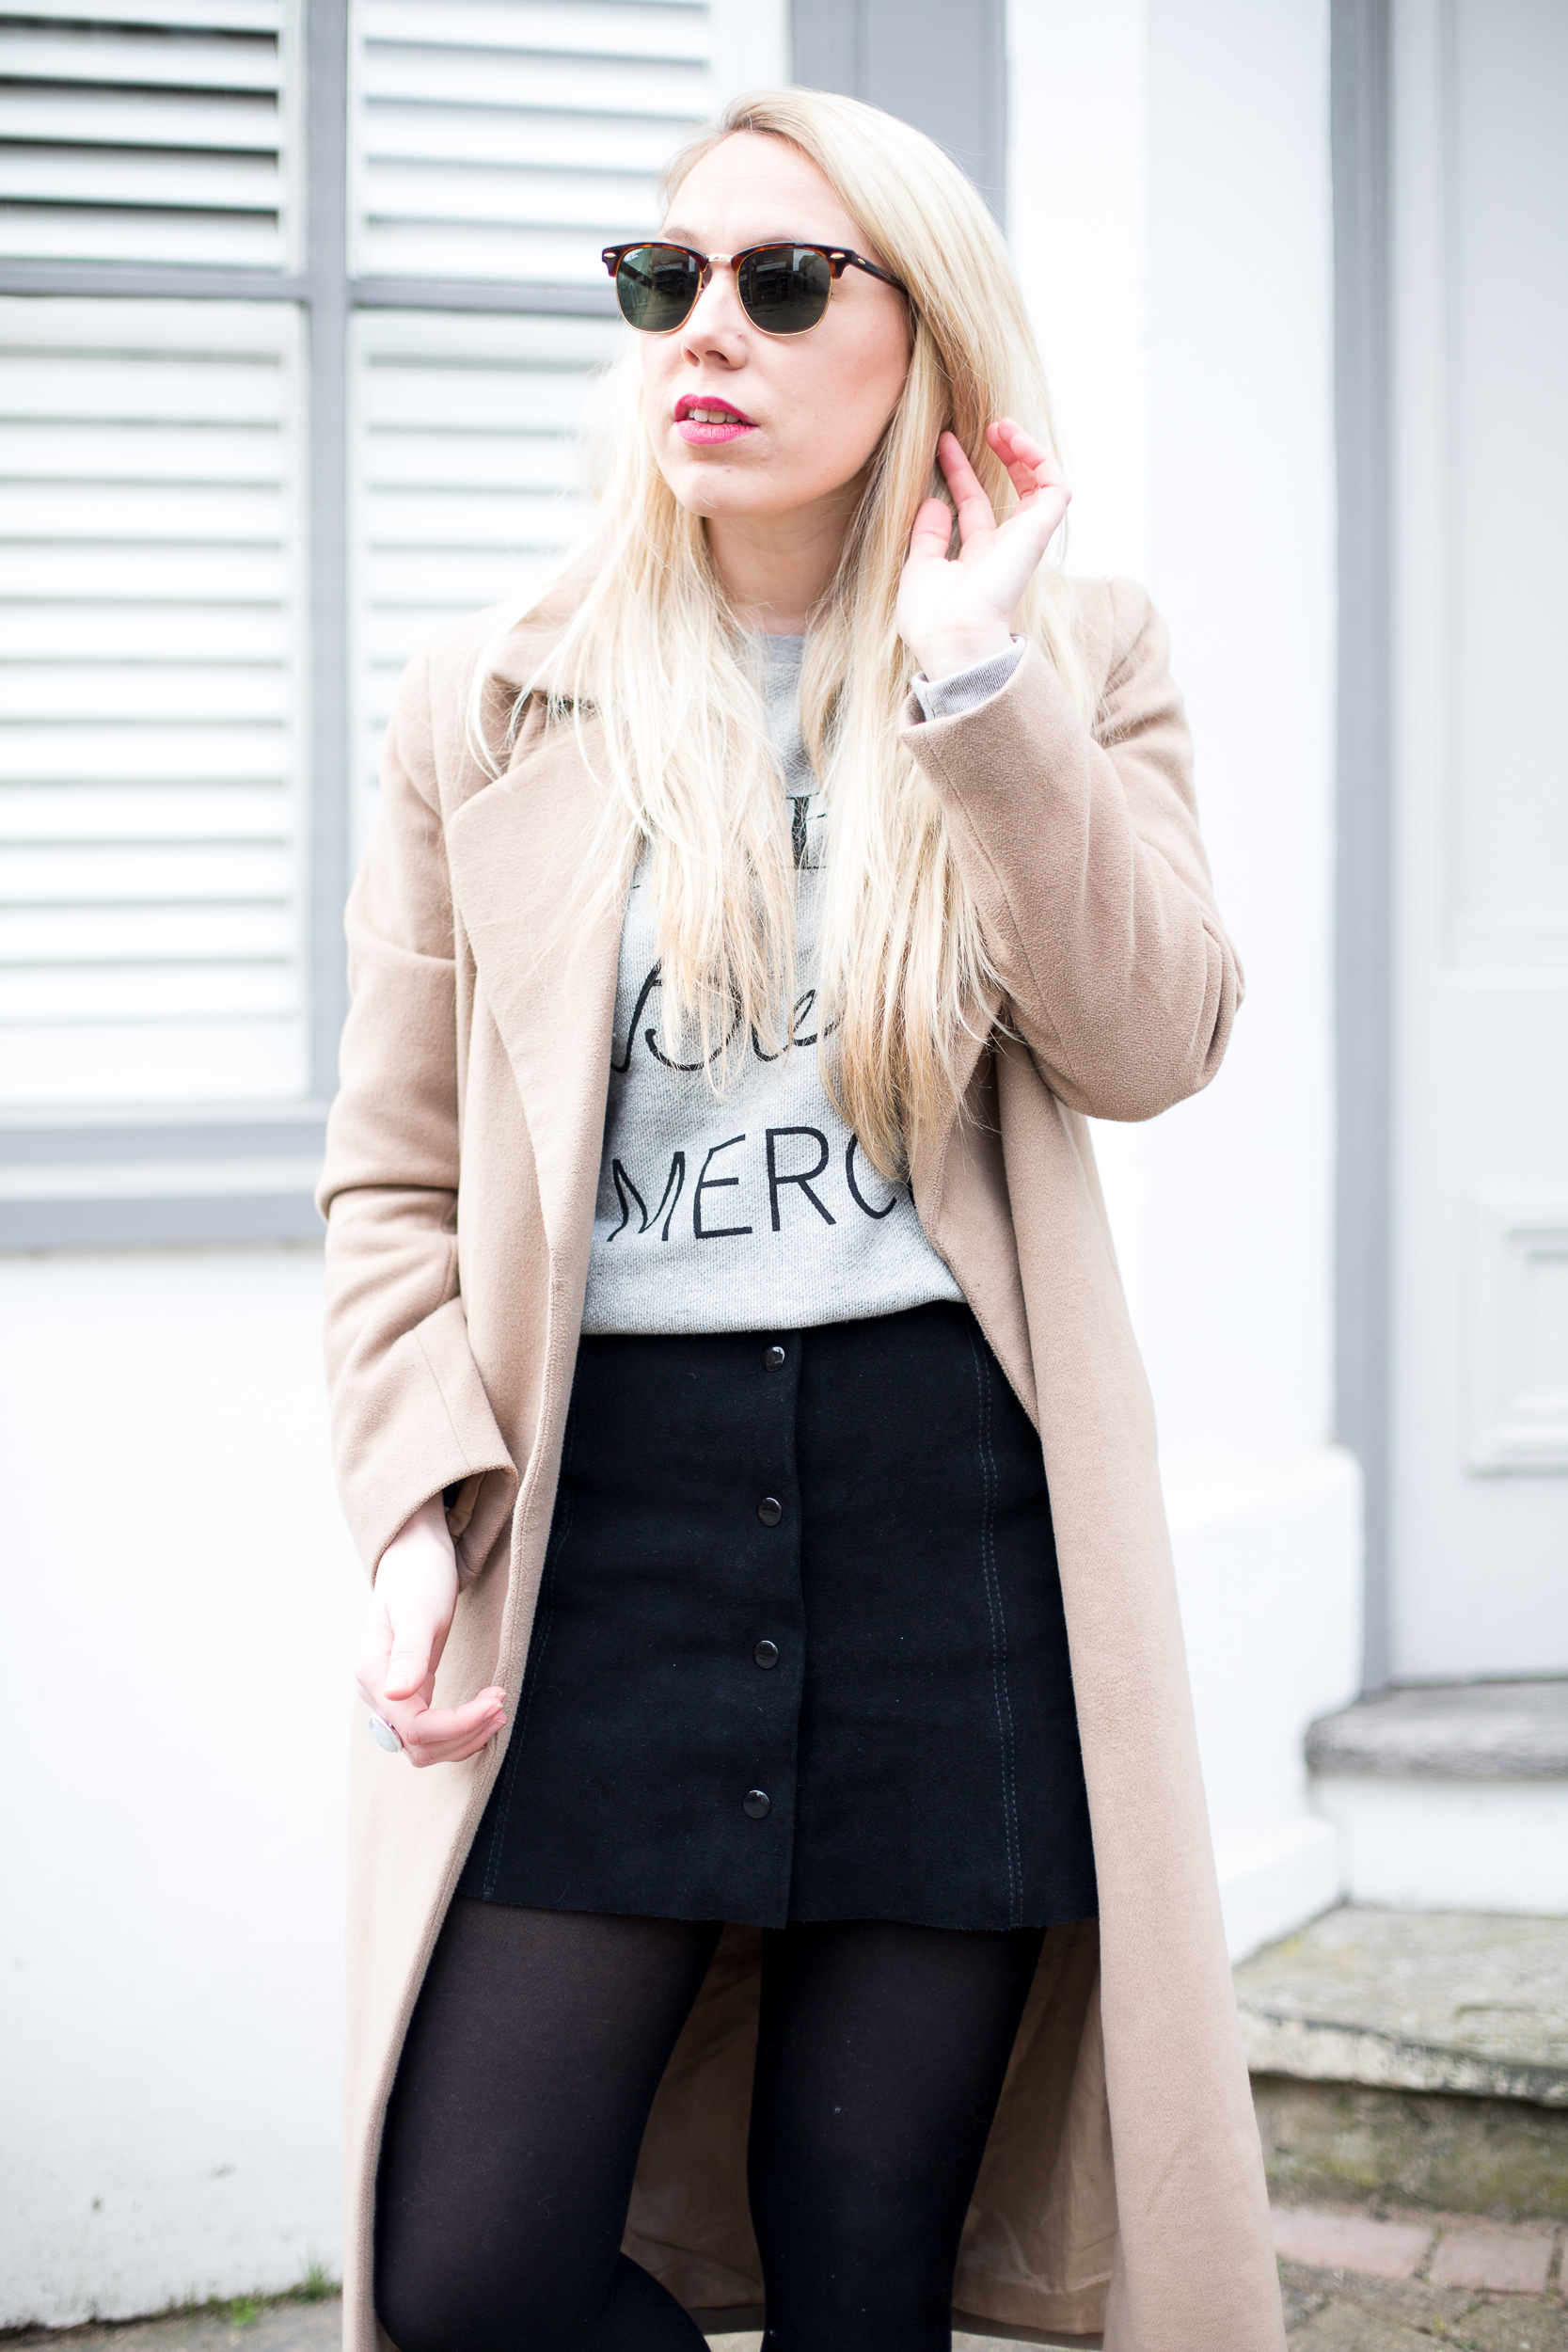 BLACK SUEDE BUTTON SKIRT - Mediamarmalade